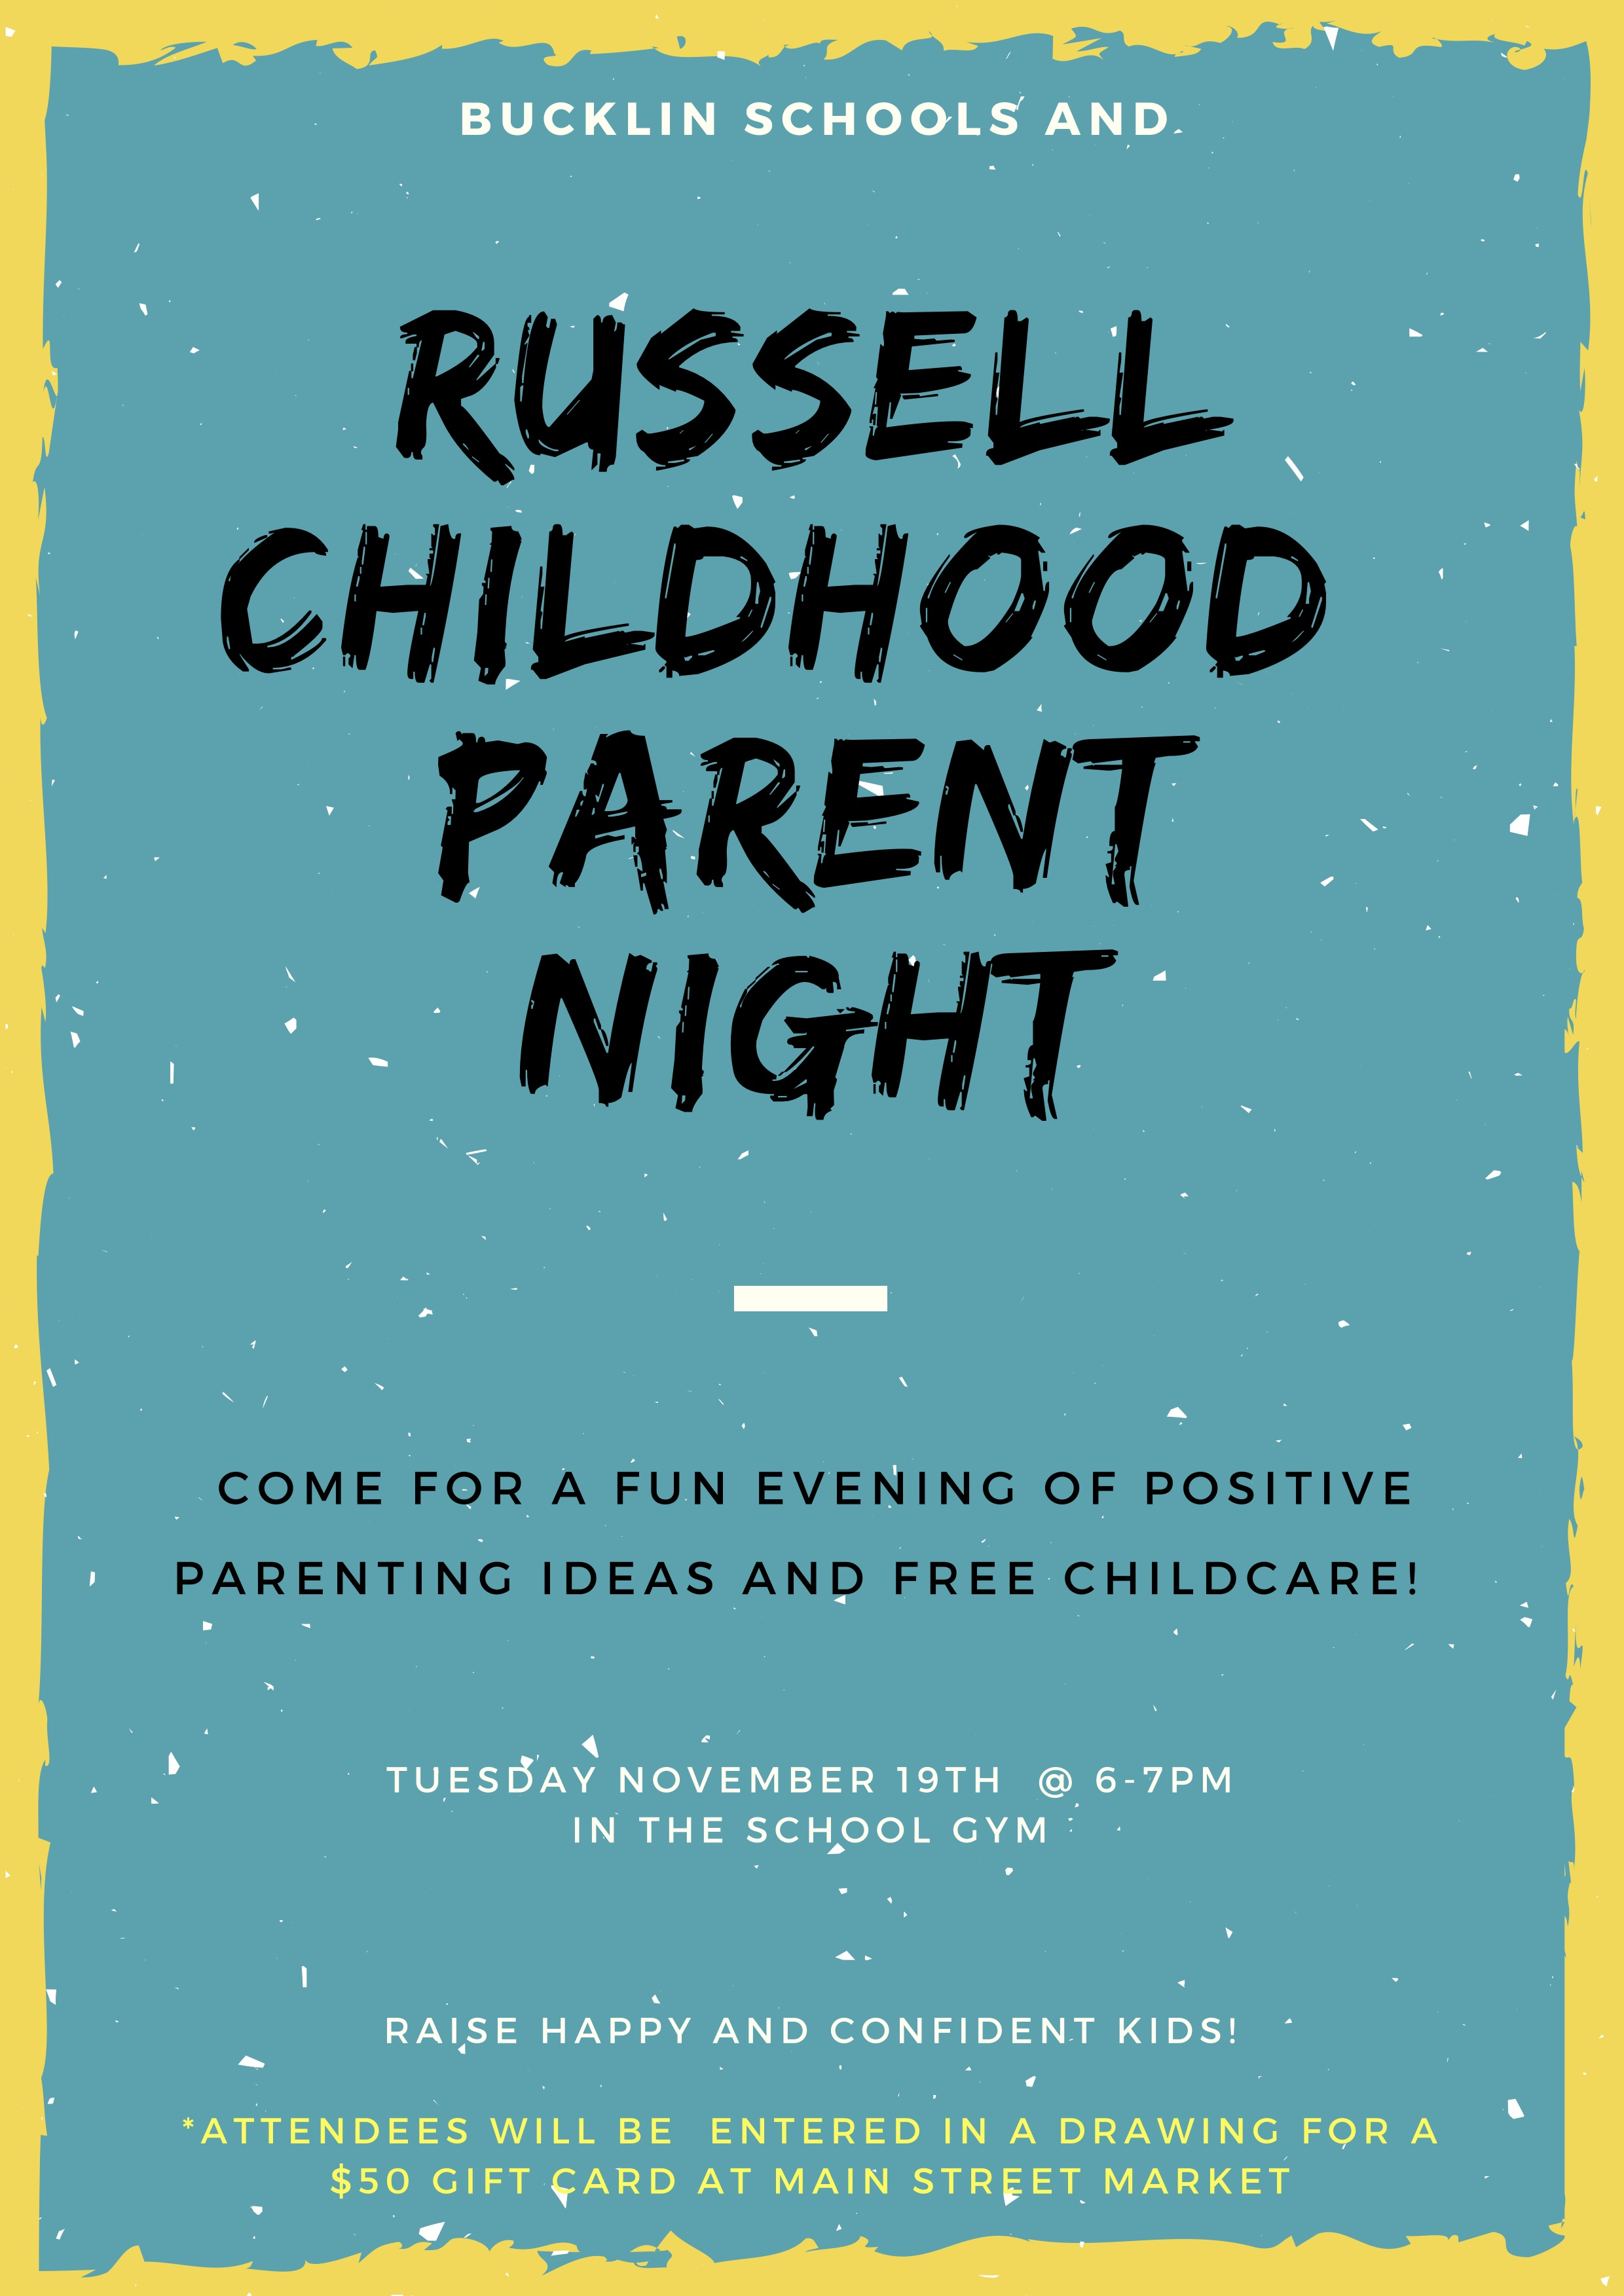 Russell Childhood Parent Night